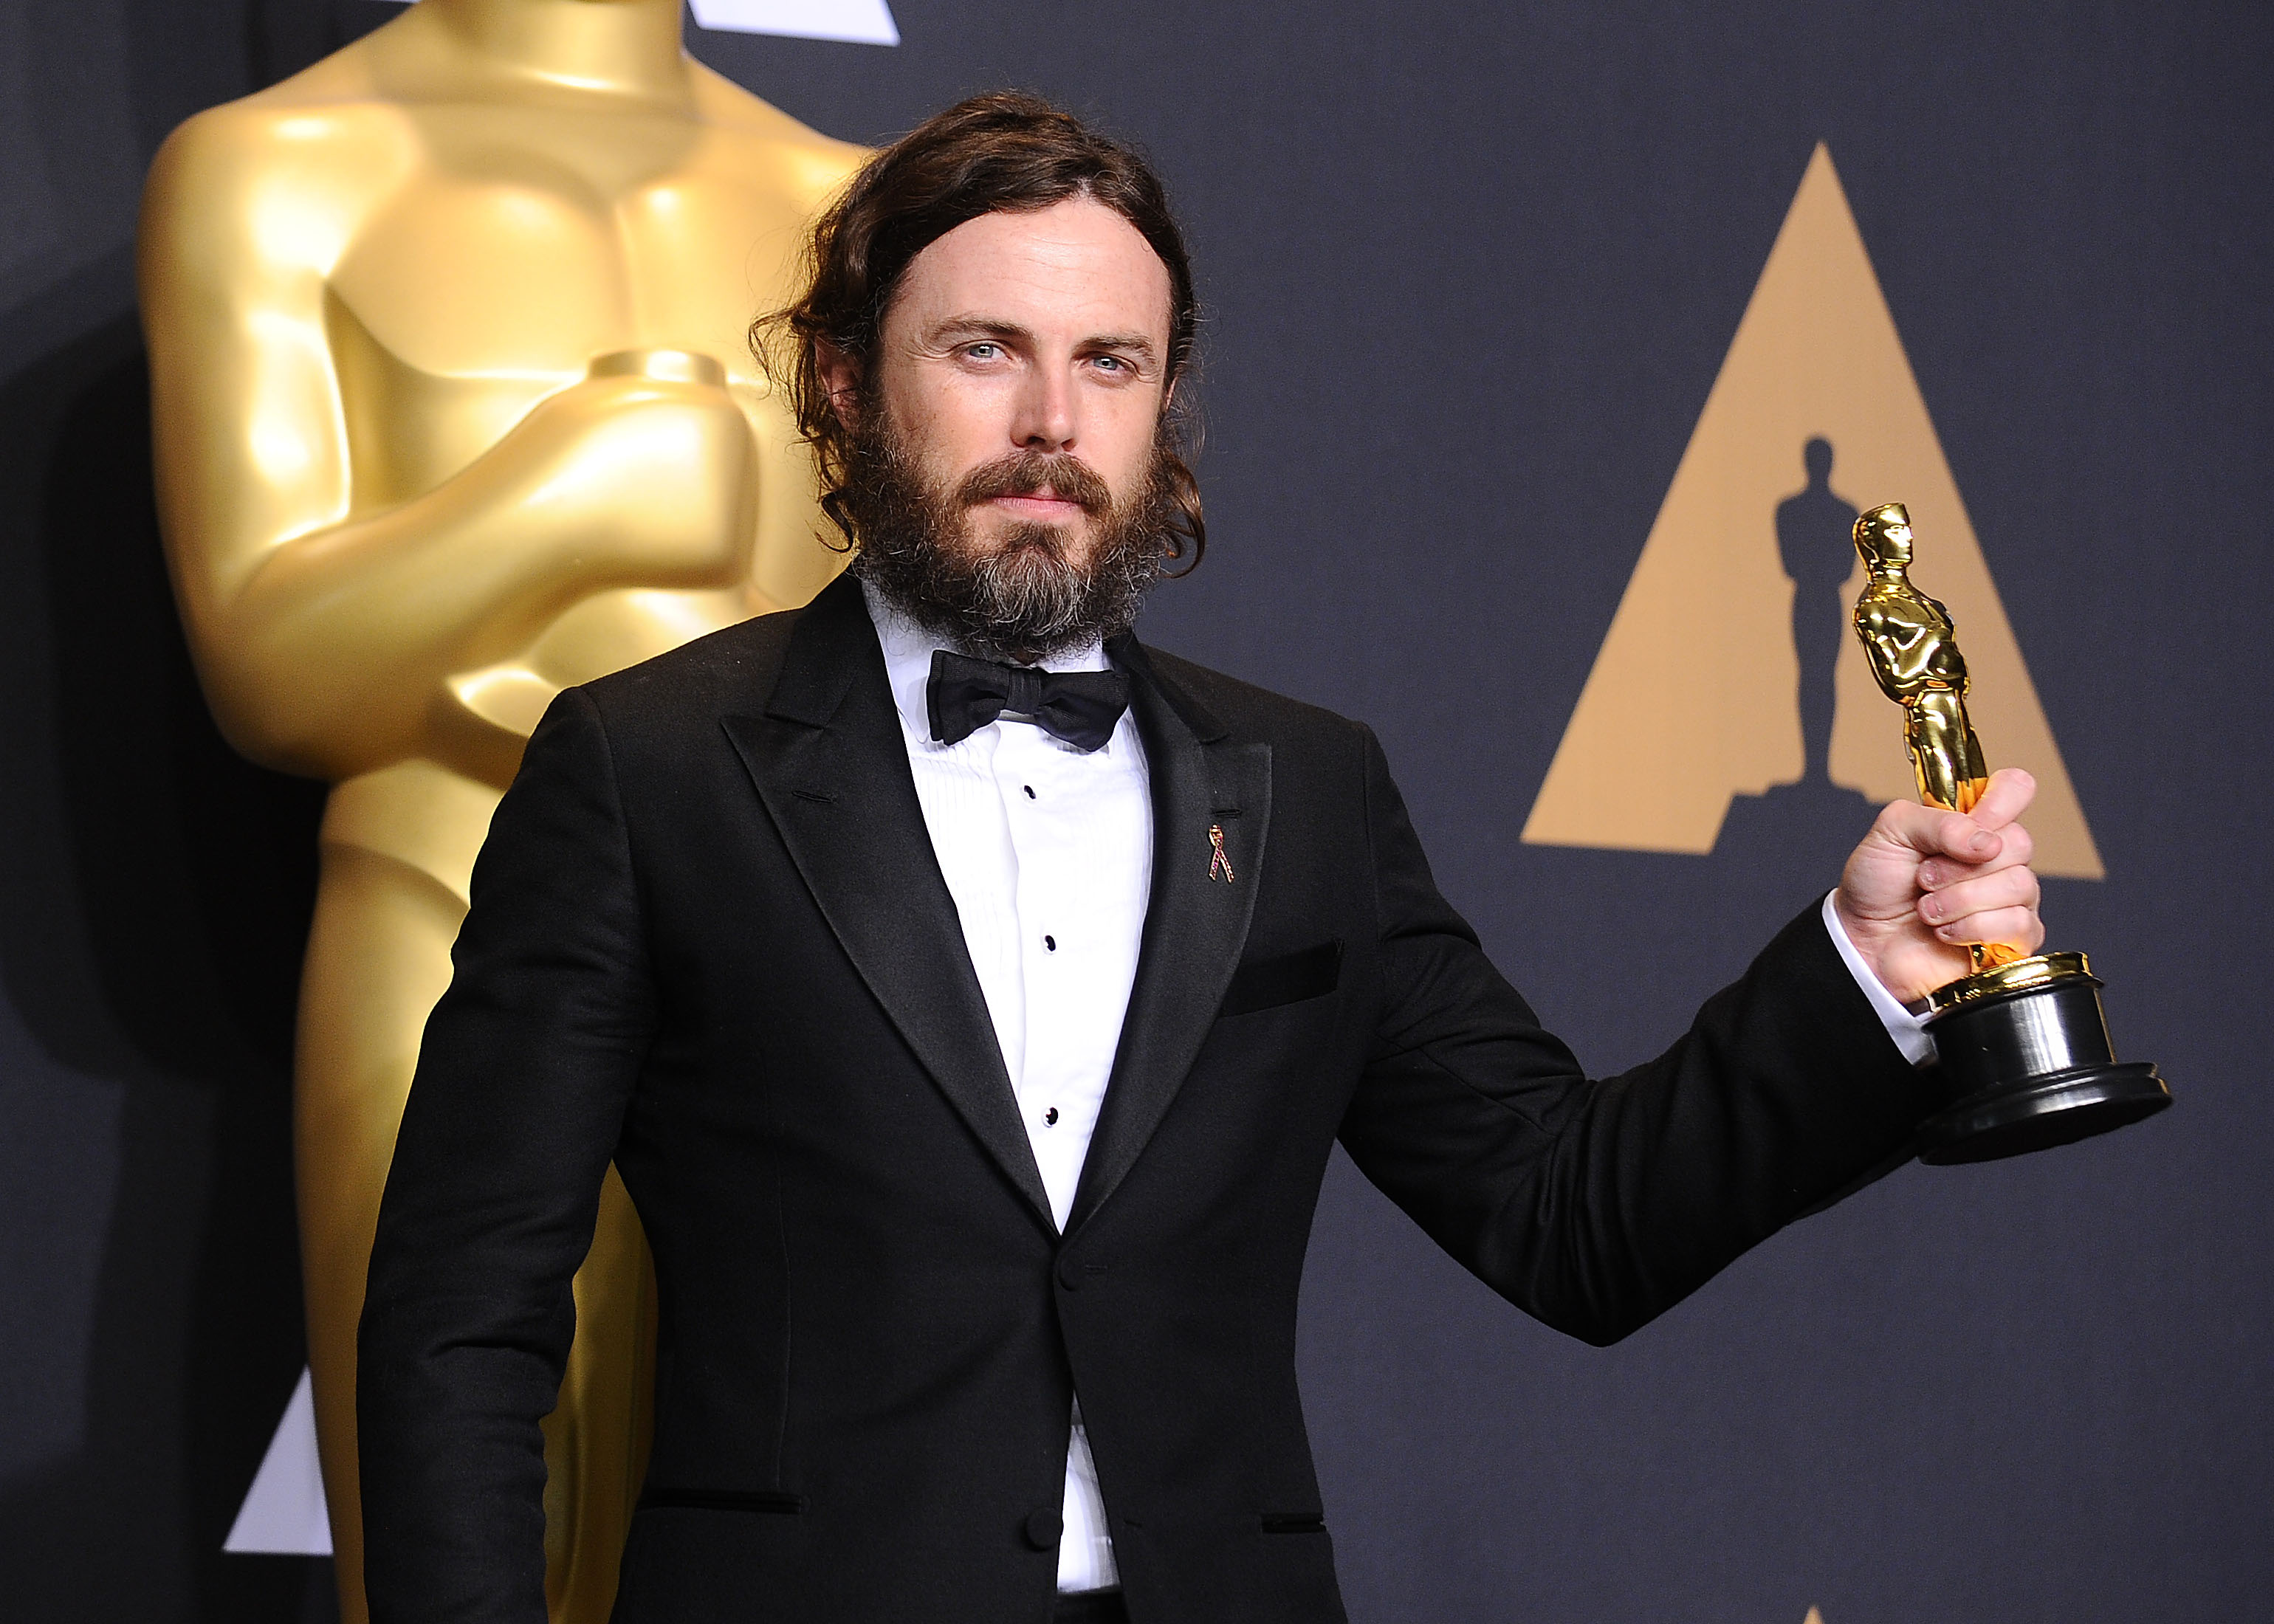 Casey Affleck will NOT present at the Academy Awards this year, breaking a long-standing tradition